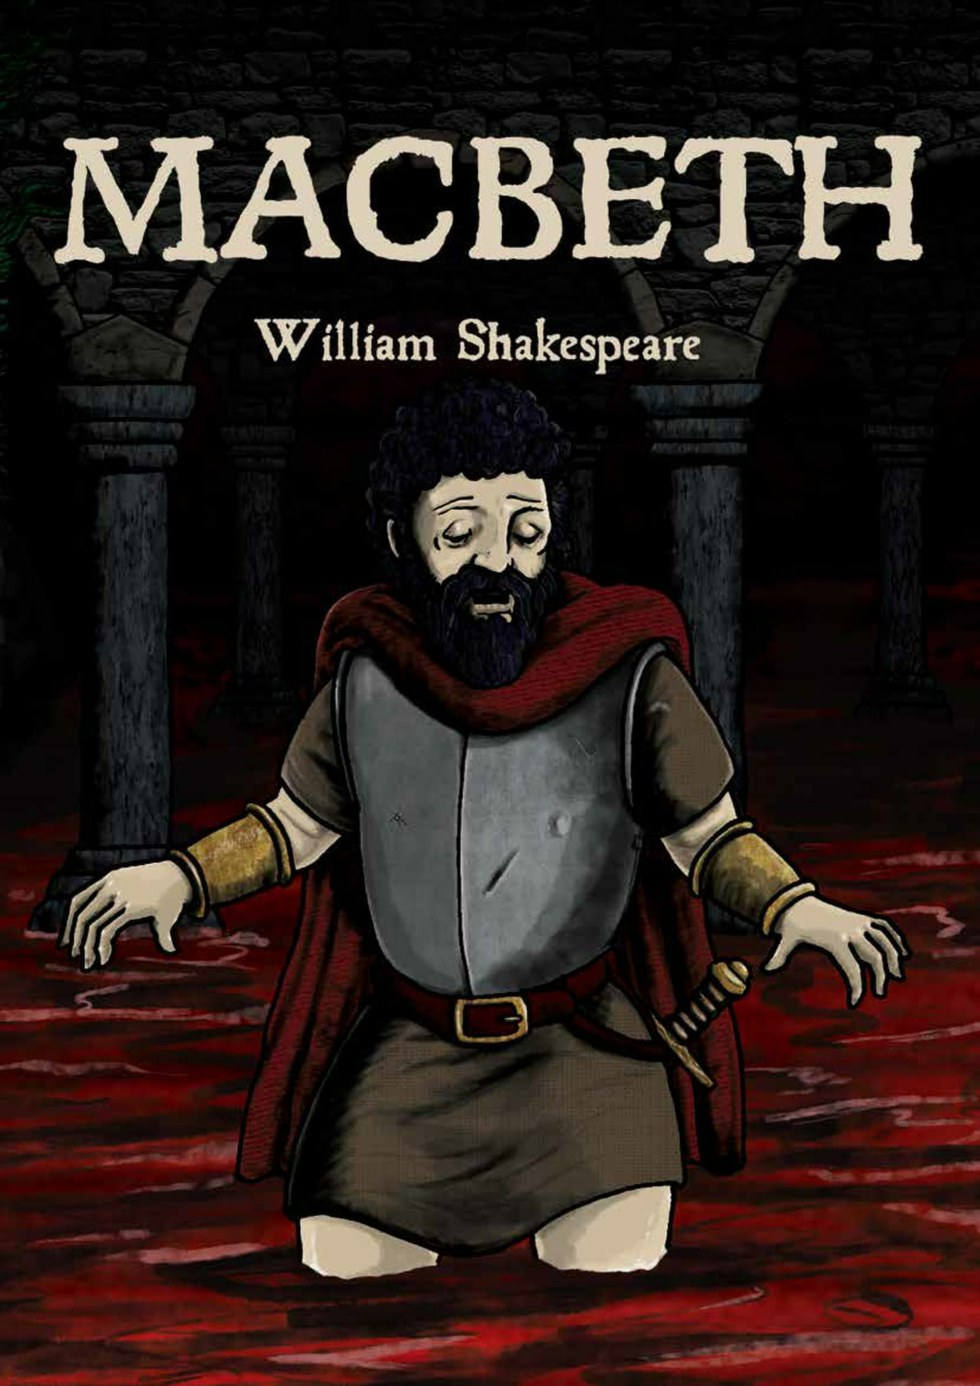 the themes of fairness and foolishness in macbeth by william shakespeare A summary of themes in william shakespeare's macbeth learn exactly what happened in this chapter, scene, or section of macbeth and what it means perfect for acing essays, tests, and quizzes, as well as for writing lesson plans.